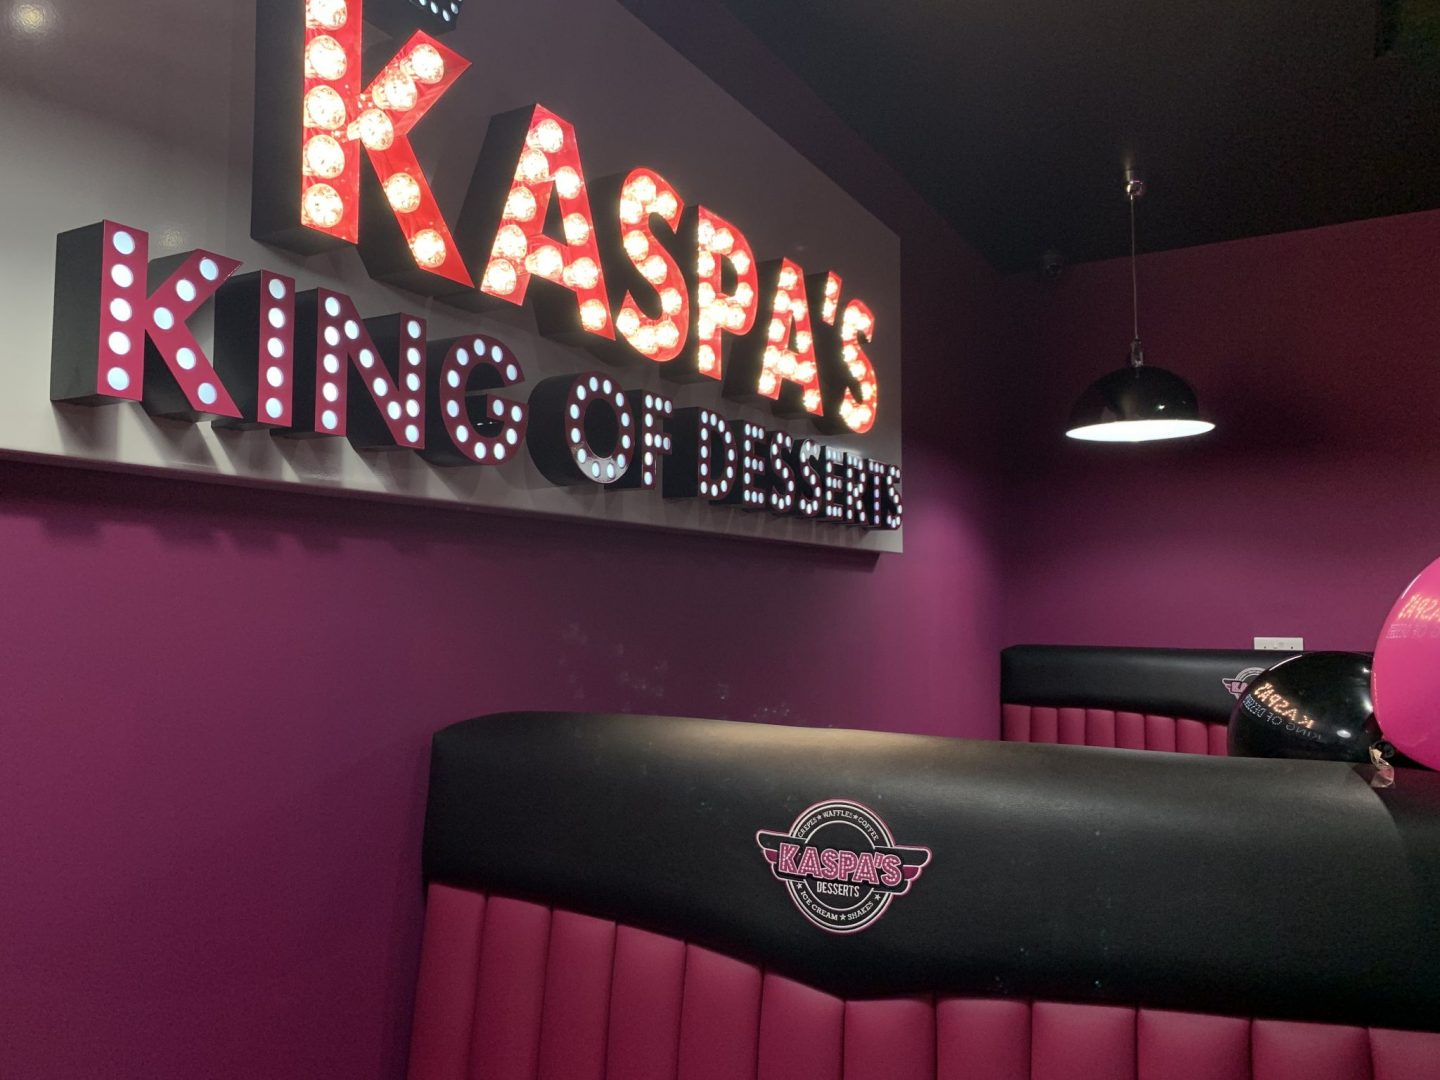 Kaspa's Darlington, The King of Desserts